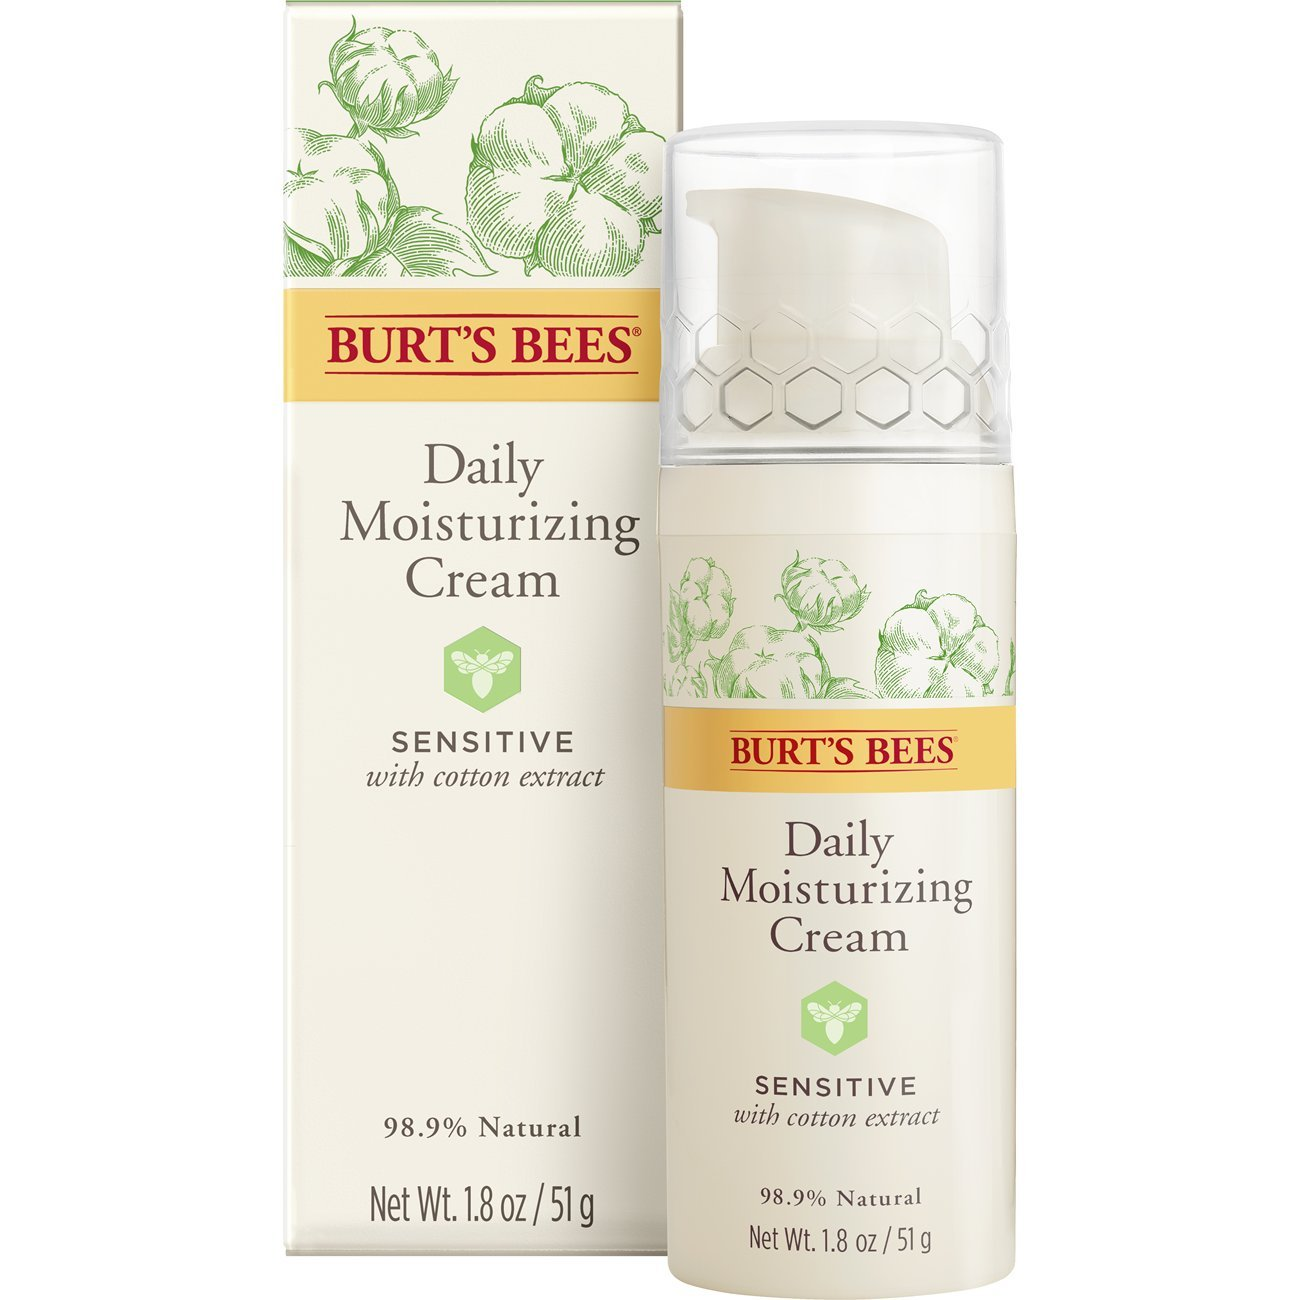 Burt's Bees Daily Face Moisturizer for Sensitive Skin, 1.8 Ounces by Burt's Bees (Image #1)